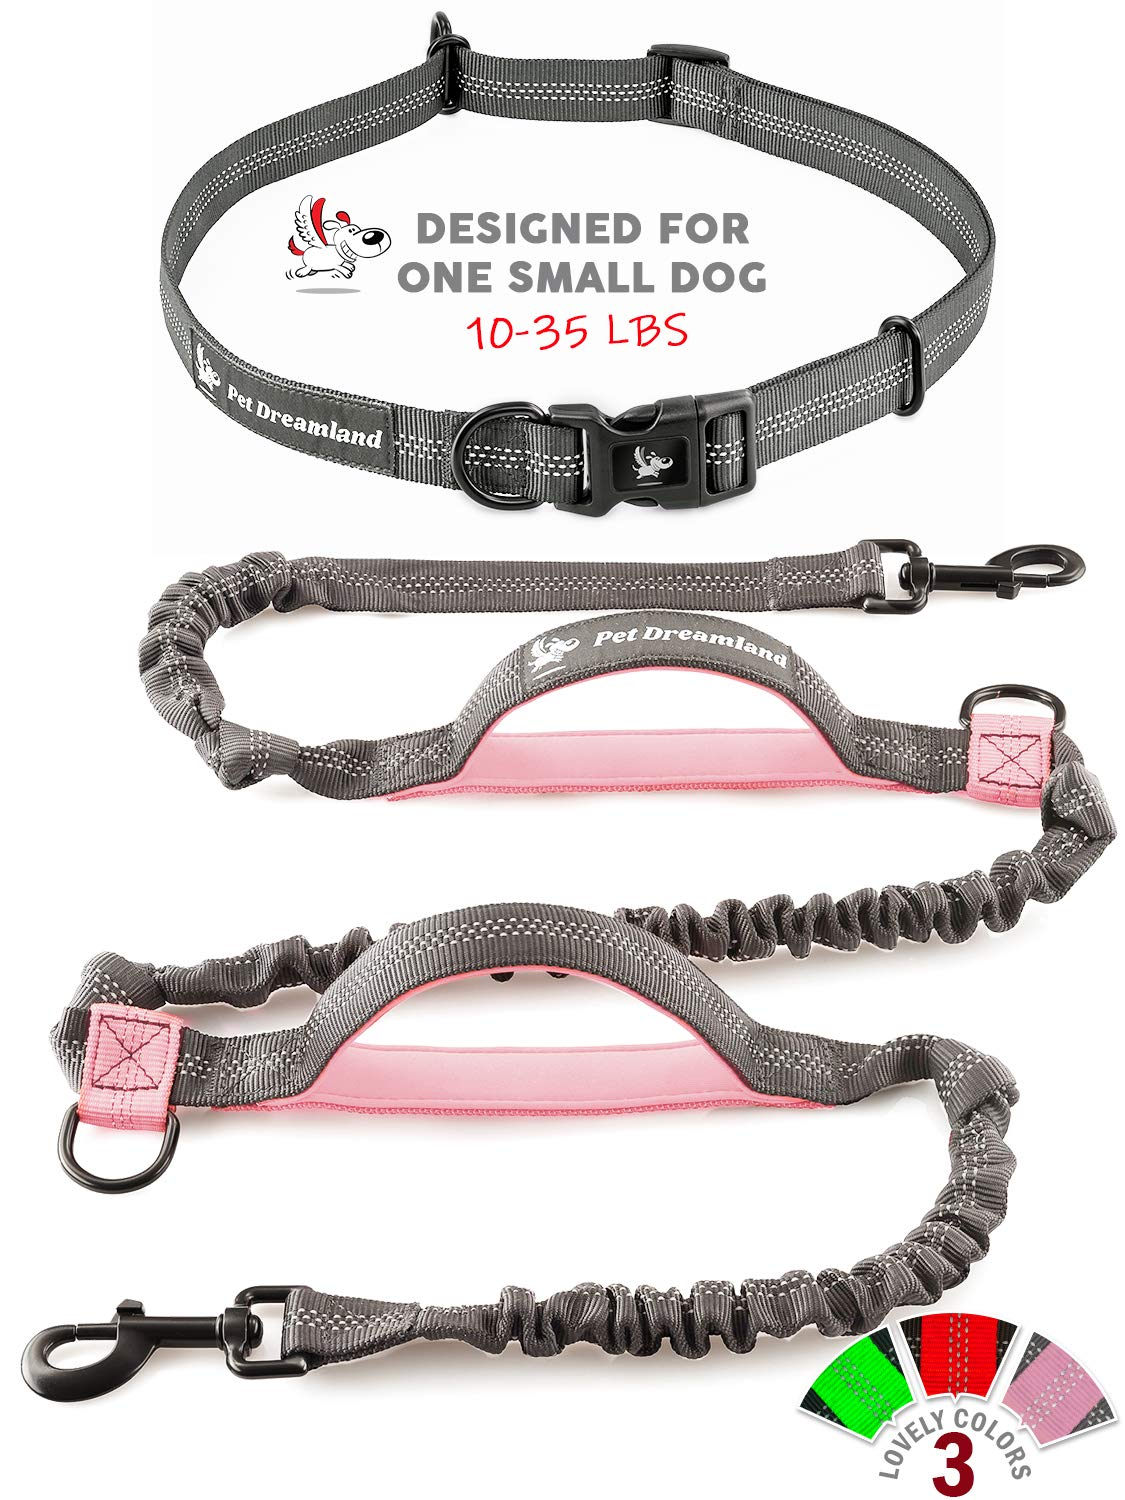 Pet Dreamland Running Dog Leash for Small Dogs - Walking Hiking Training - Extra Long Bungee Dog Lead - Reflective Leashes for Small Dogs (Grey & Pink)